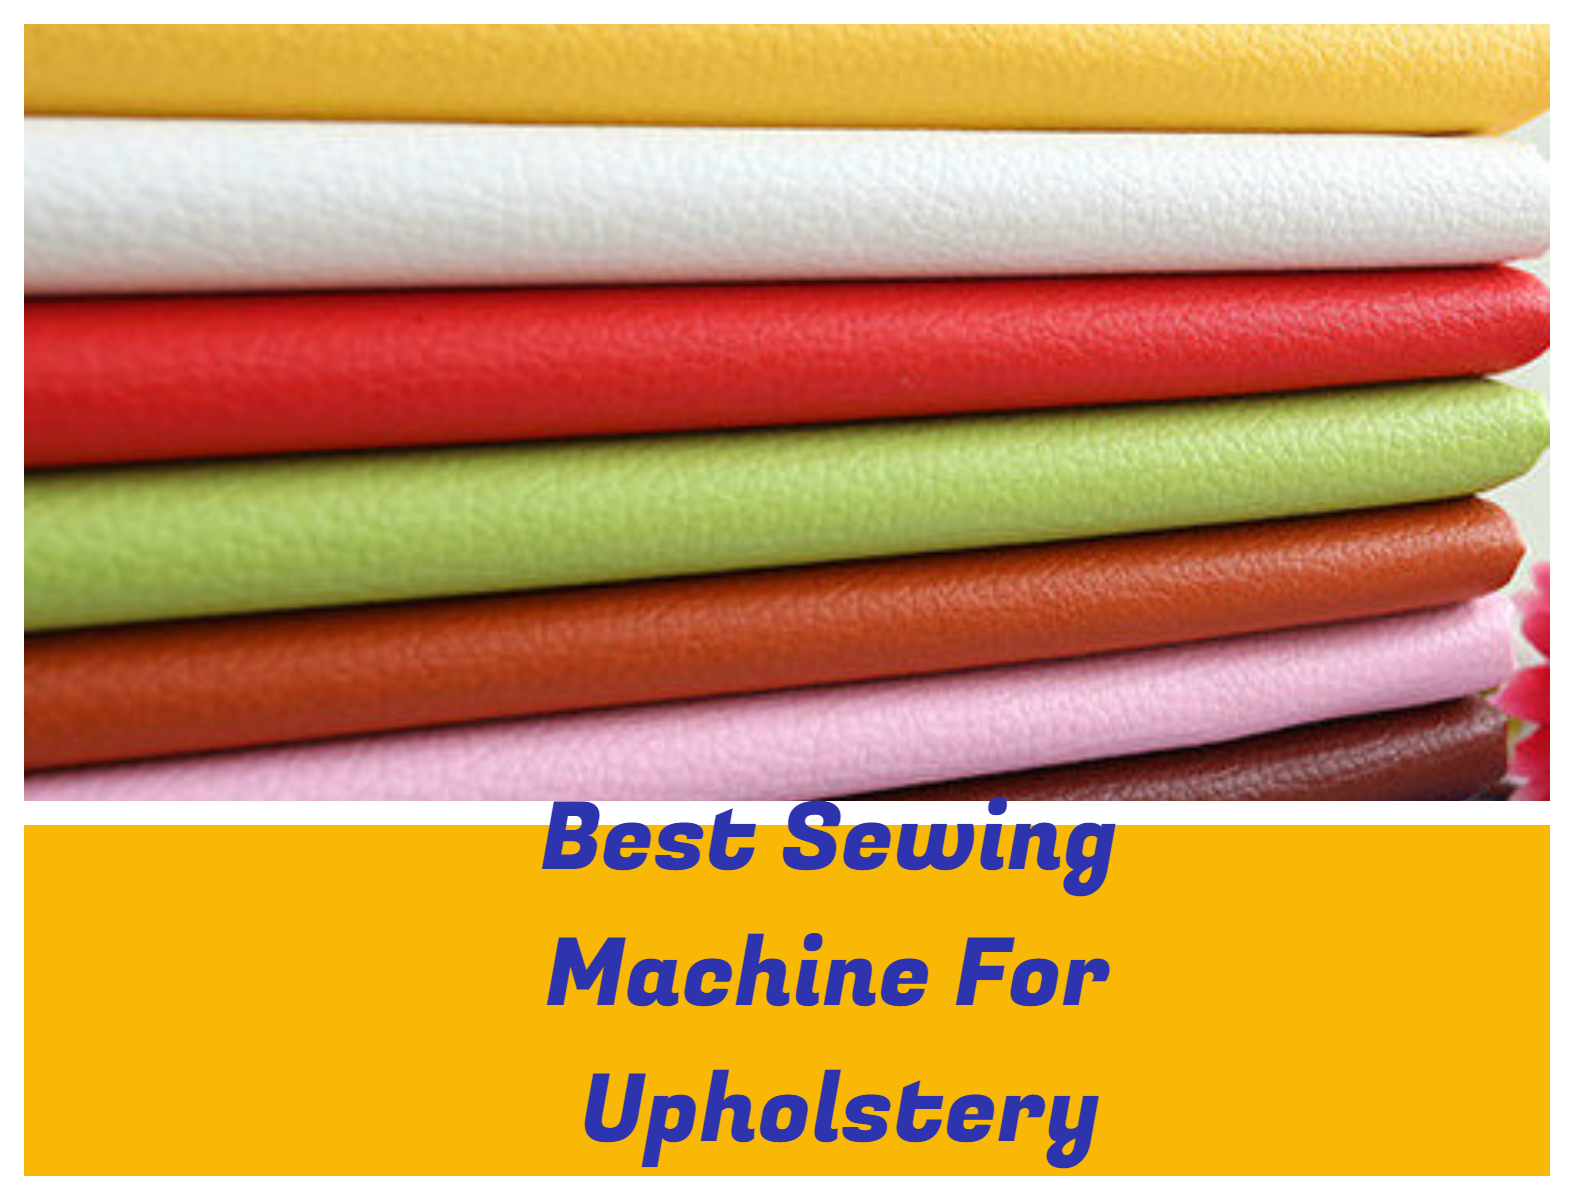 Top 10 Best Sewing Machine For Upholstery To Buy In 2018